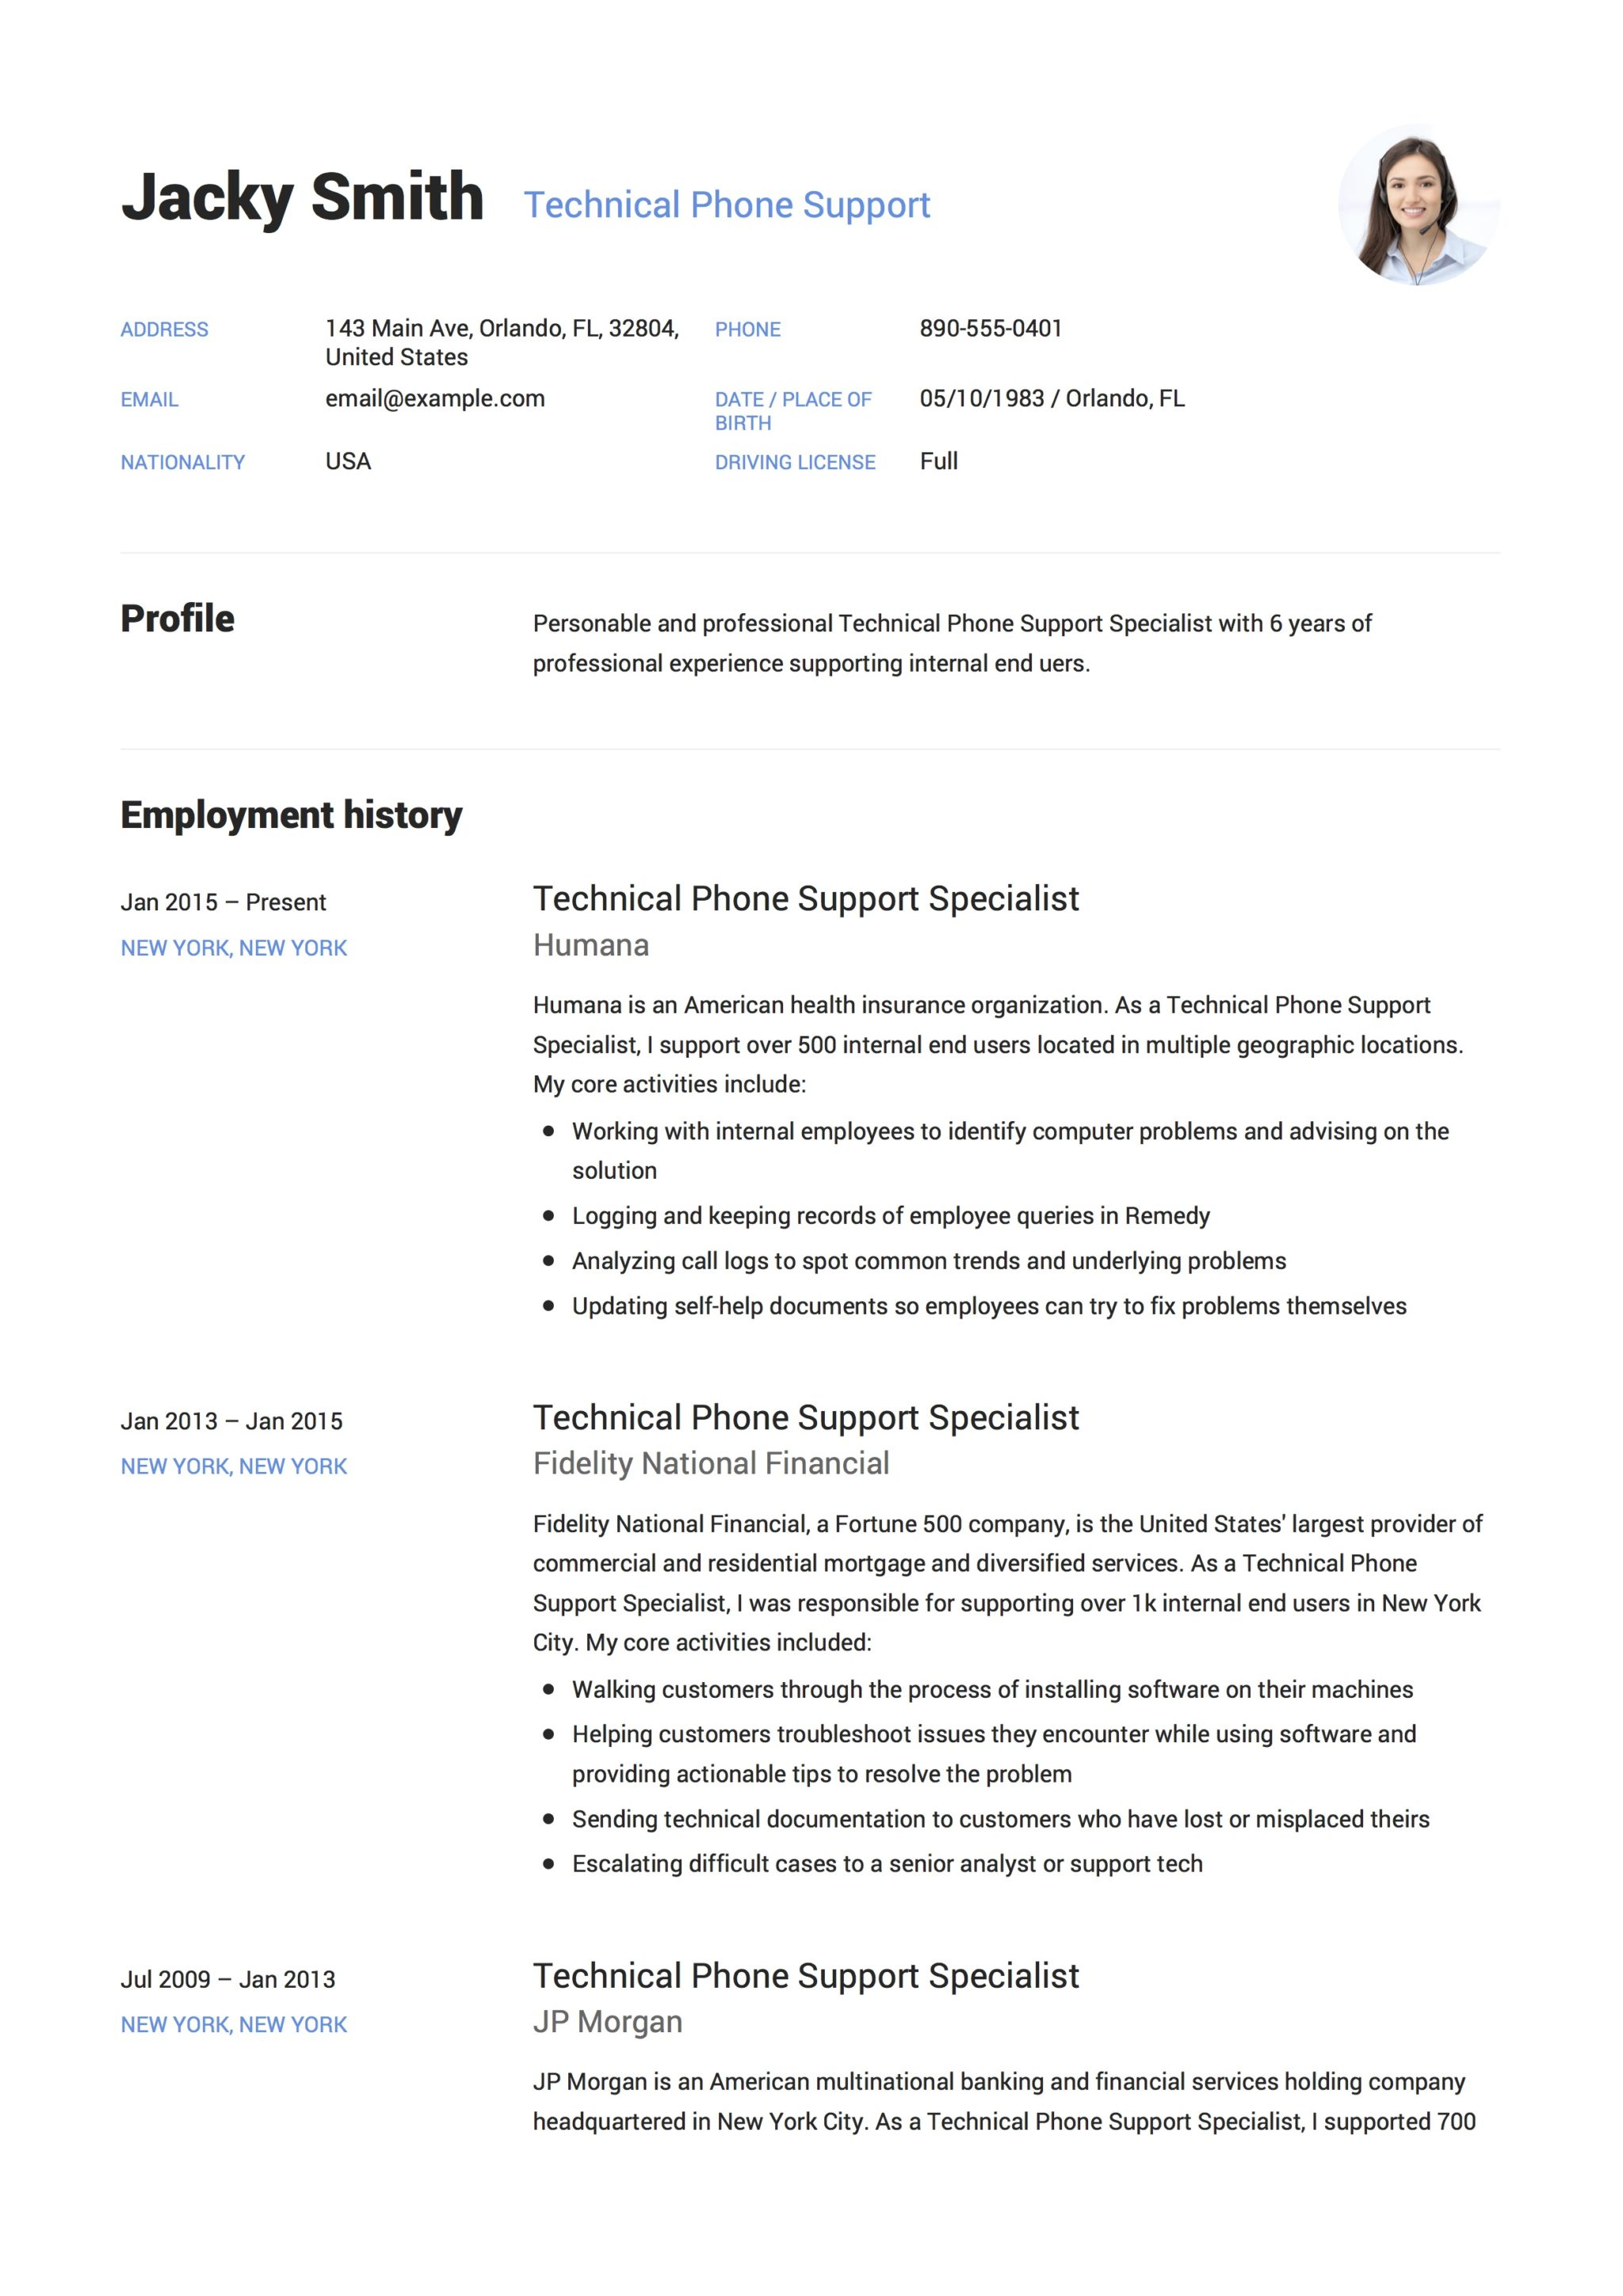 Resume Sample Technical Phone Support 1